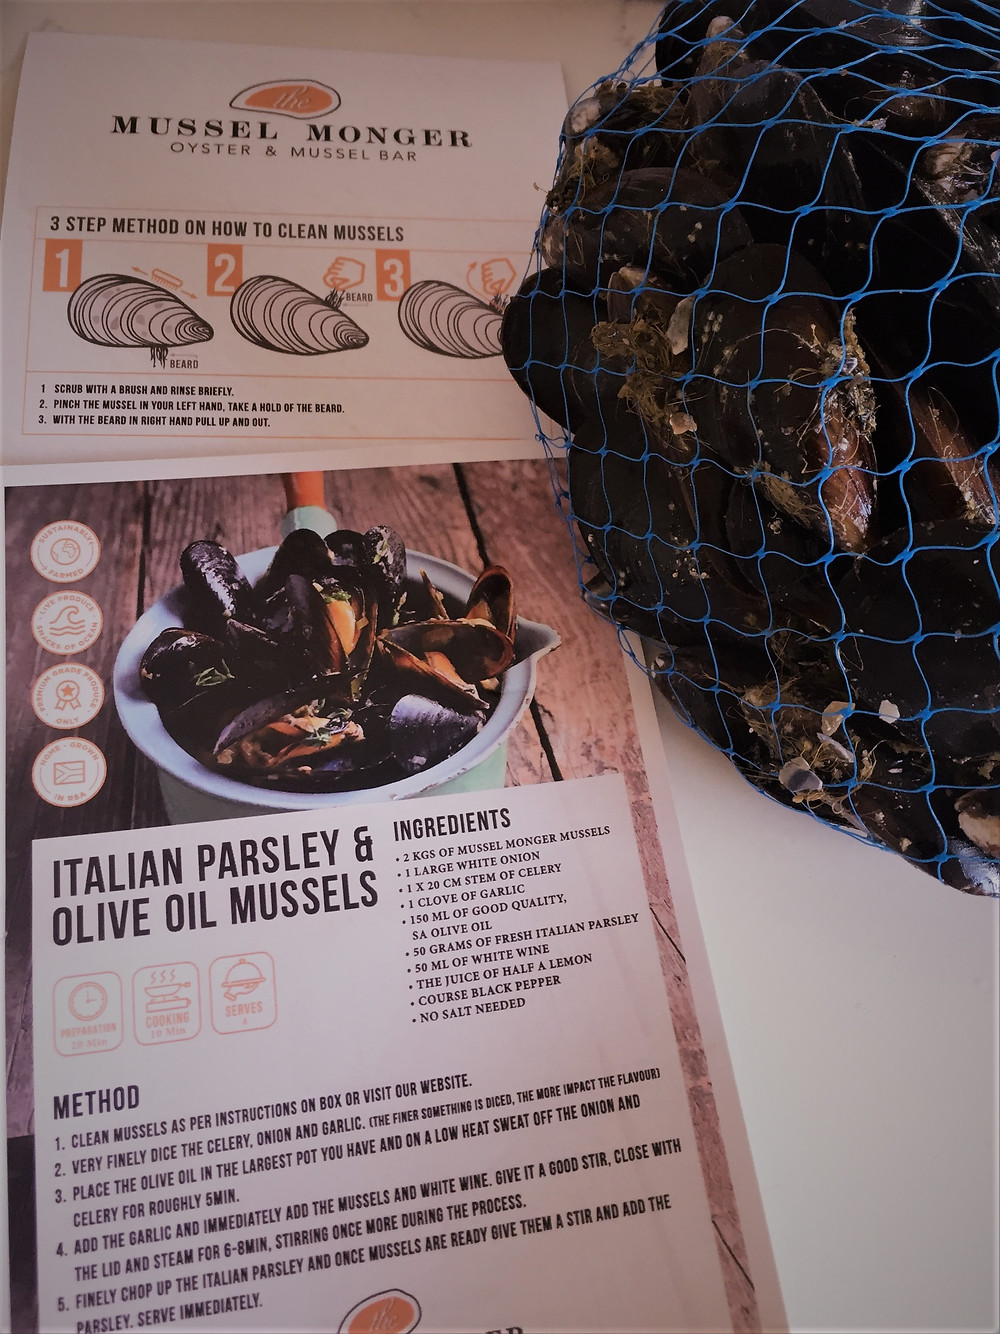 Mussels from the mussel Monger. How to clean mussels and a recipes